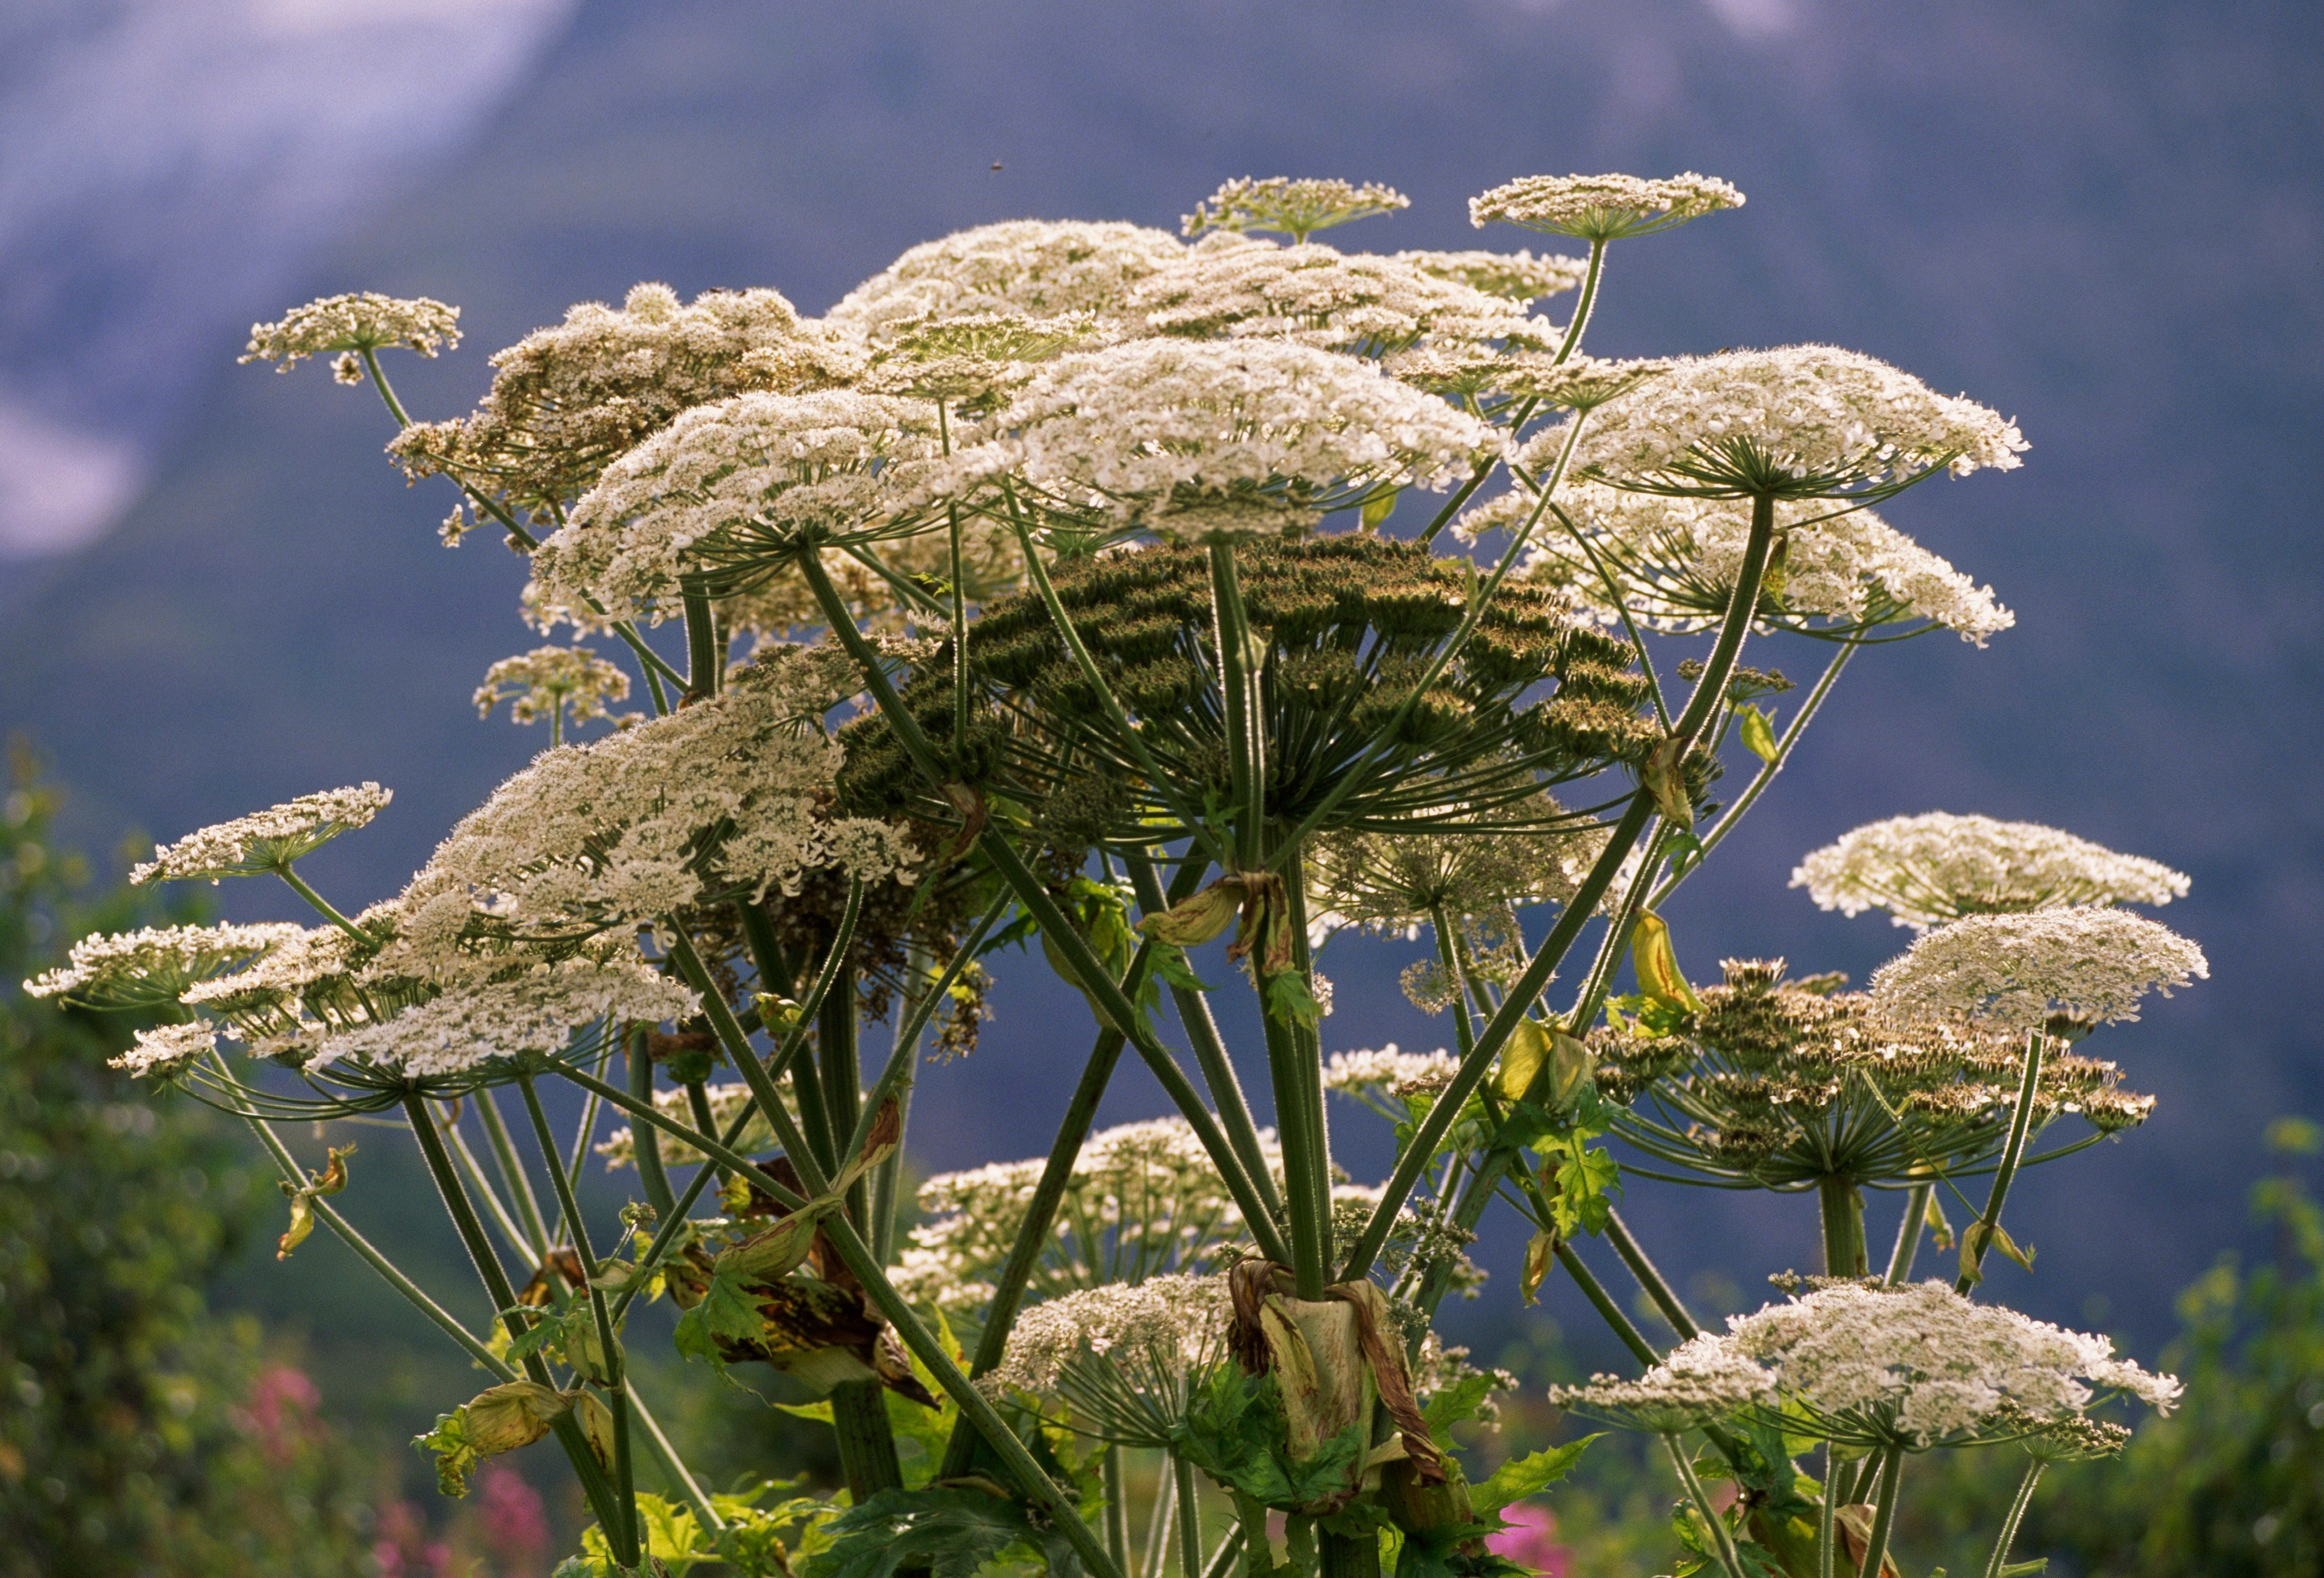 Giant hogweed in France.